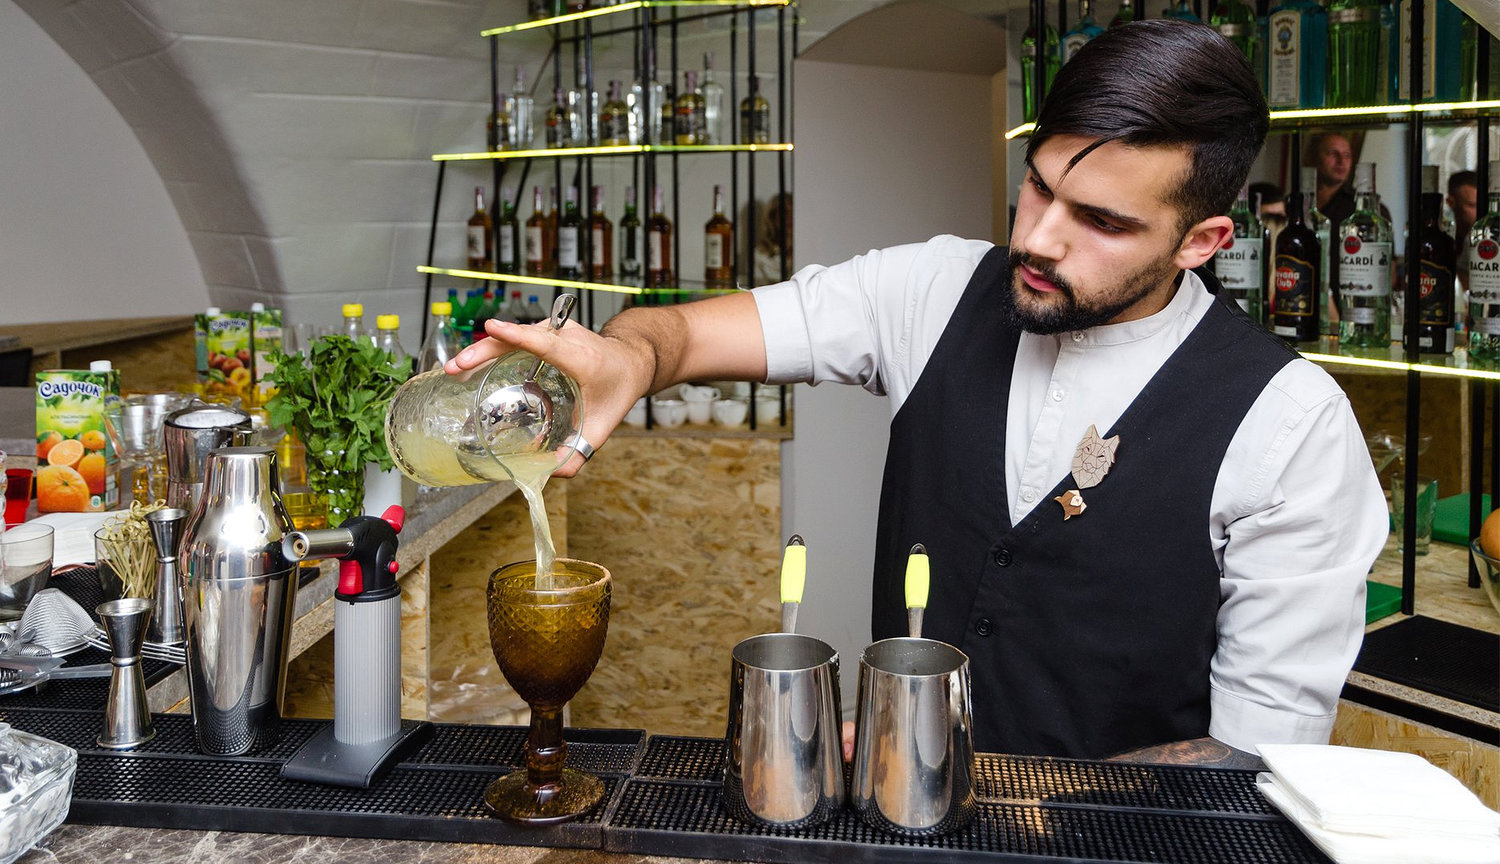 A bartender prepares a cocktail at Kosher Bar in Odessa.